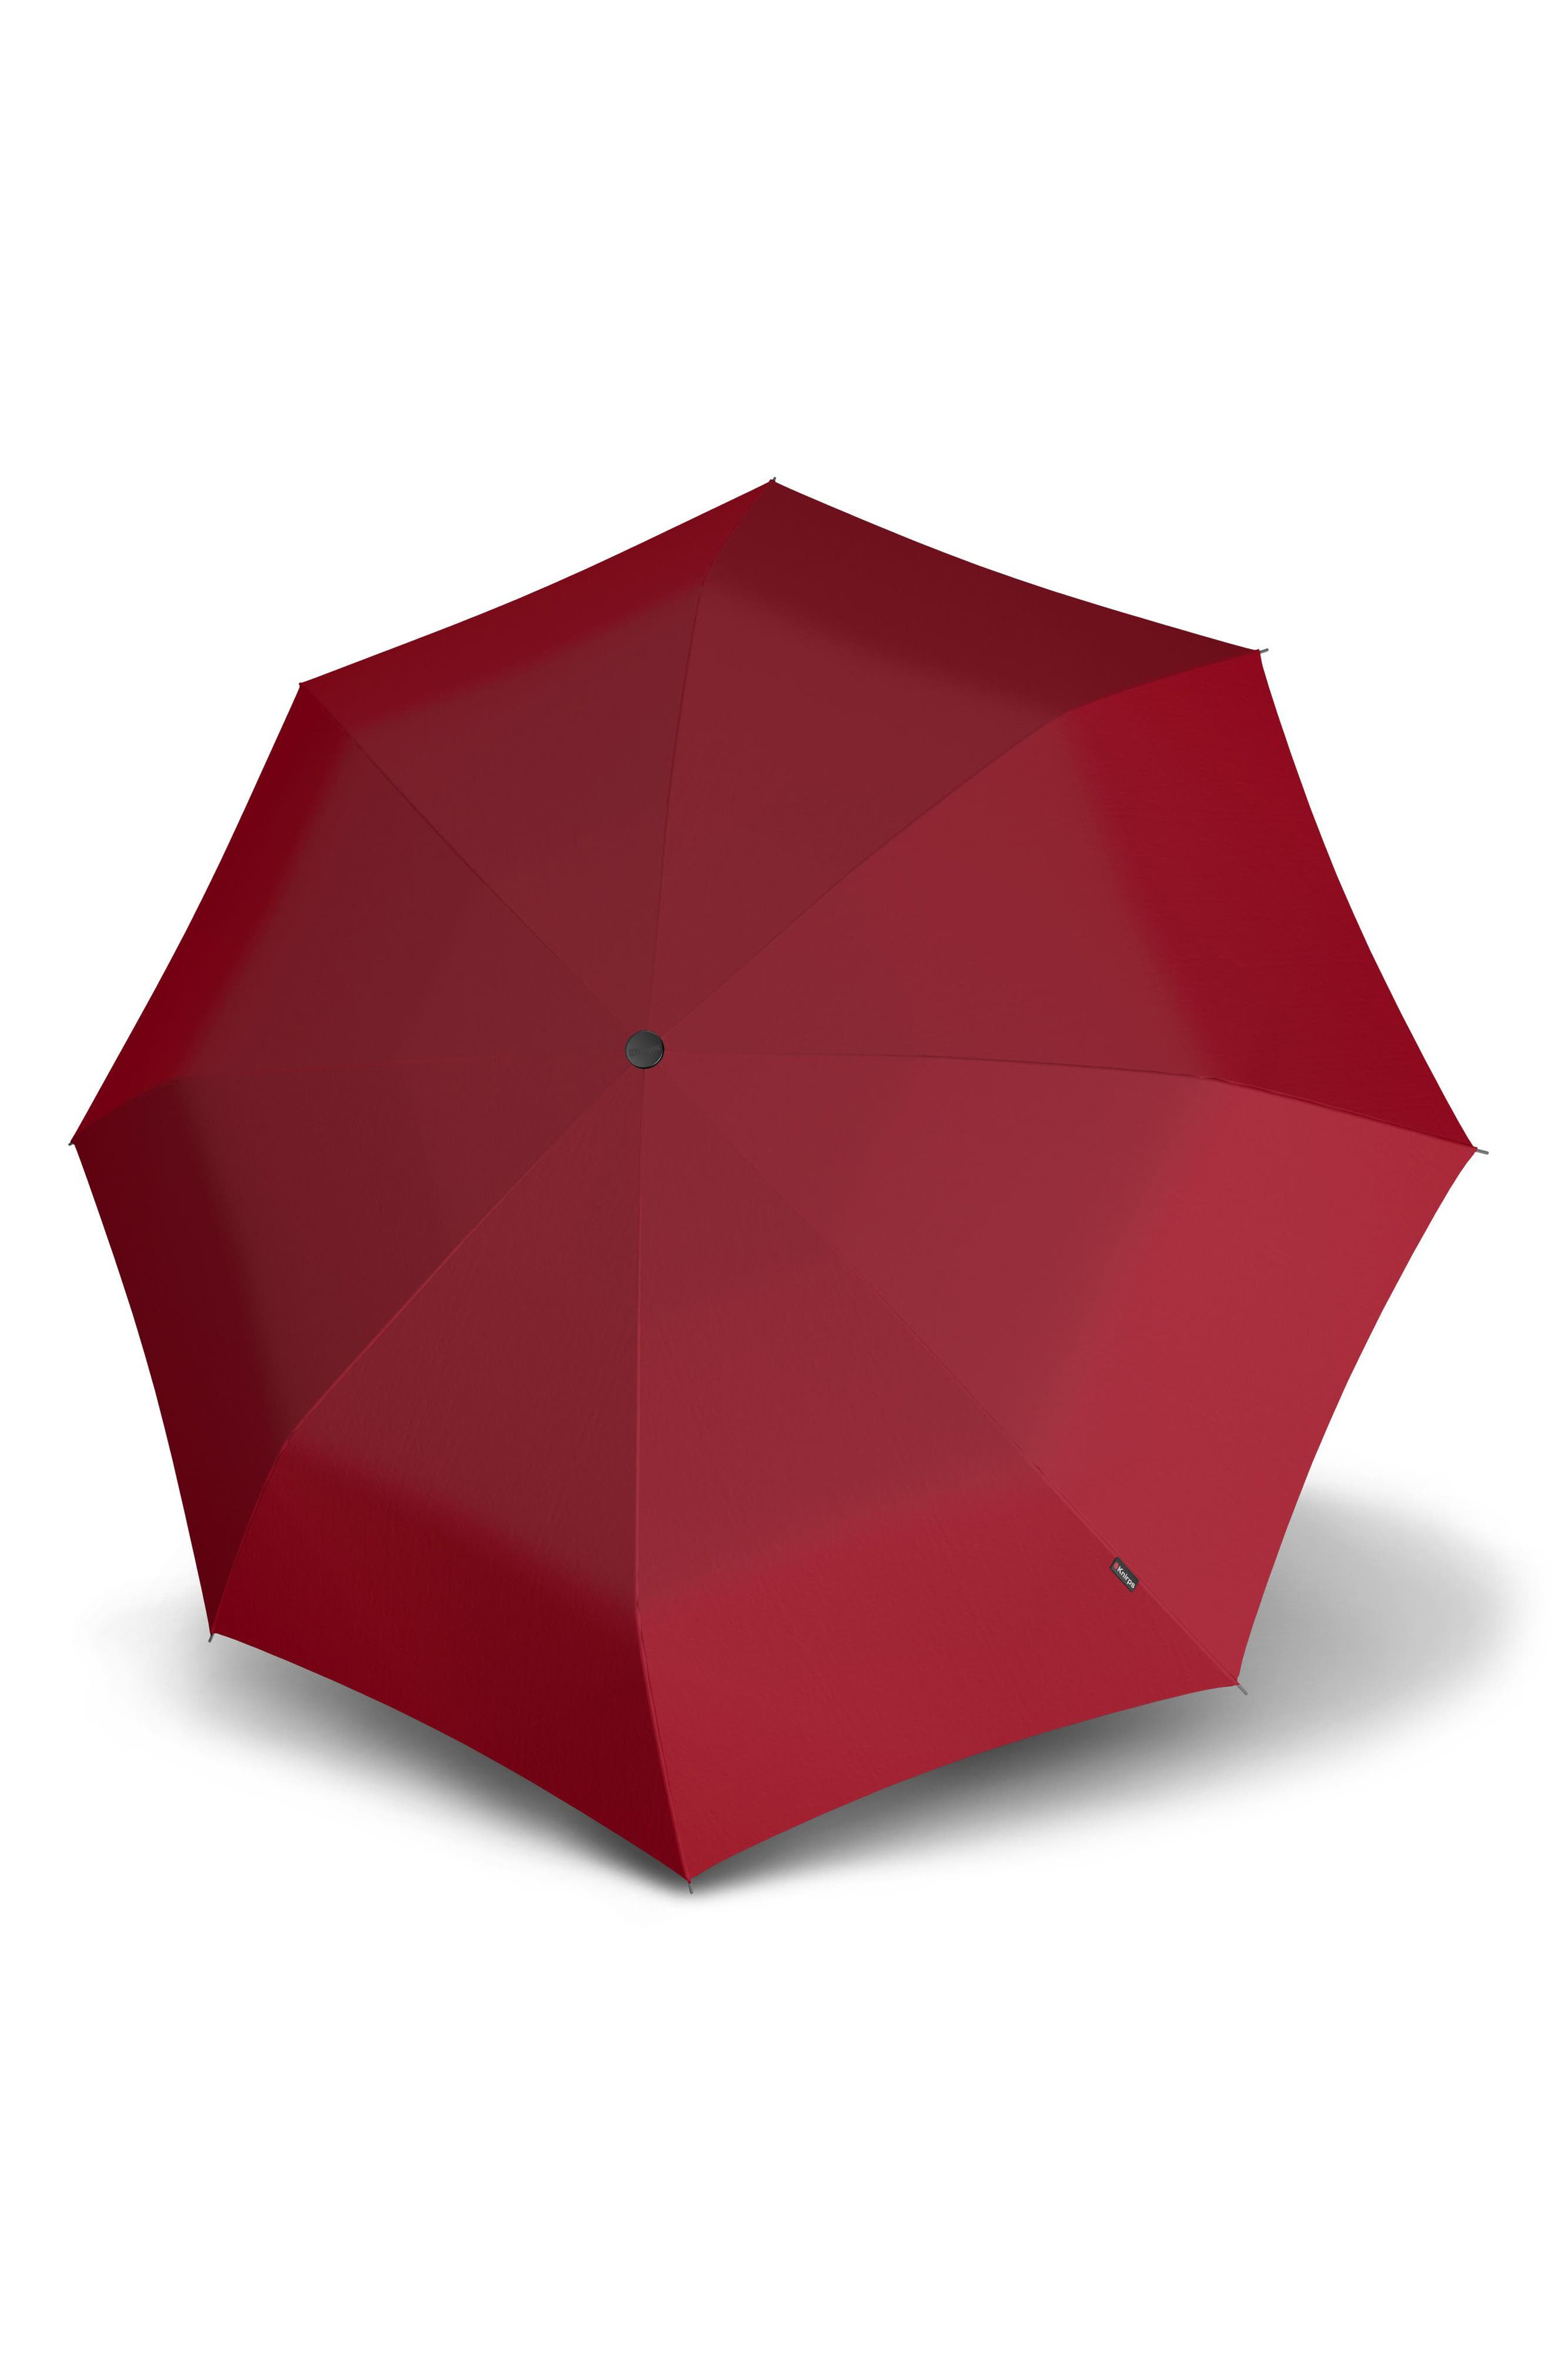 Compact Duomatic Umbrella,                             Main thumbnail 1, color,                             Red